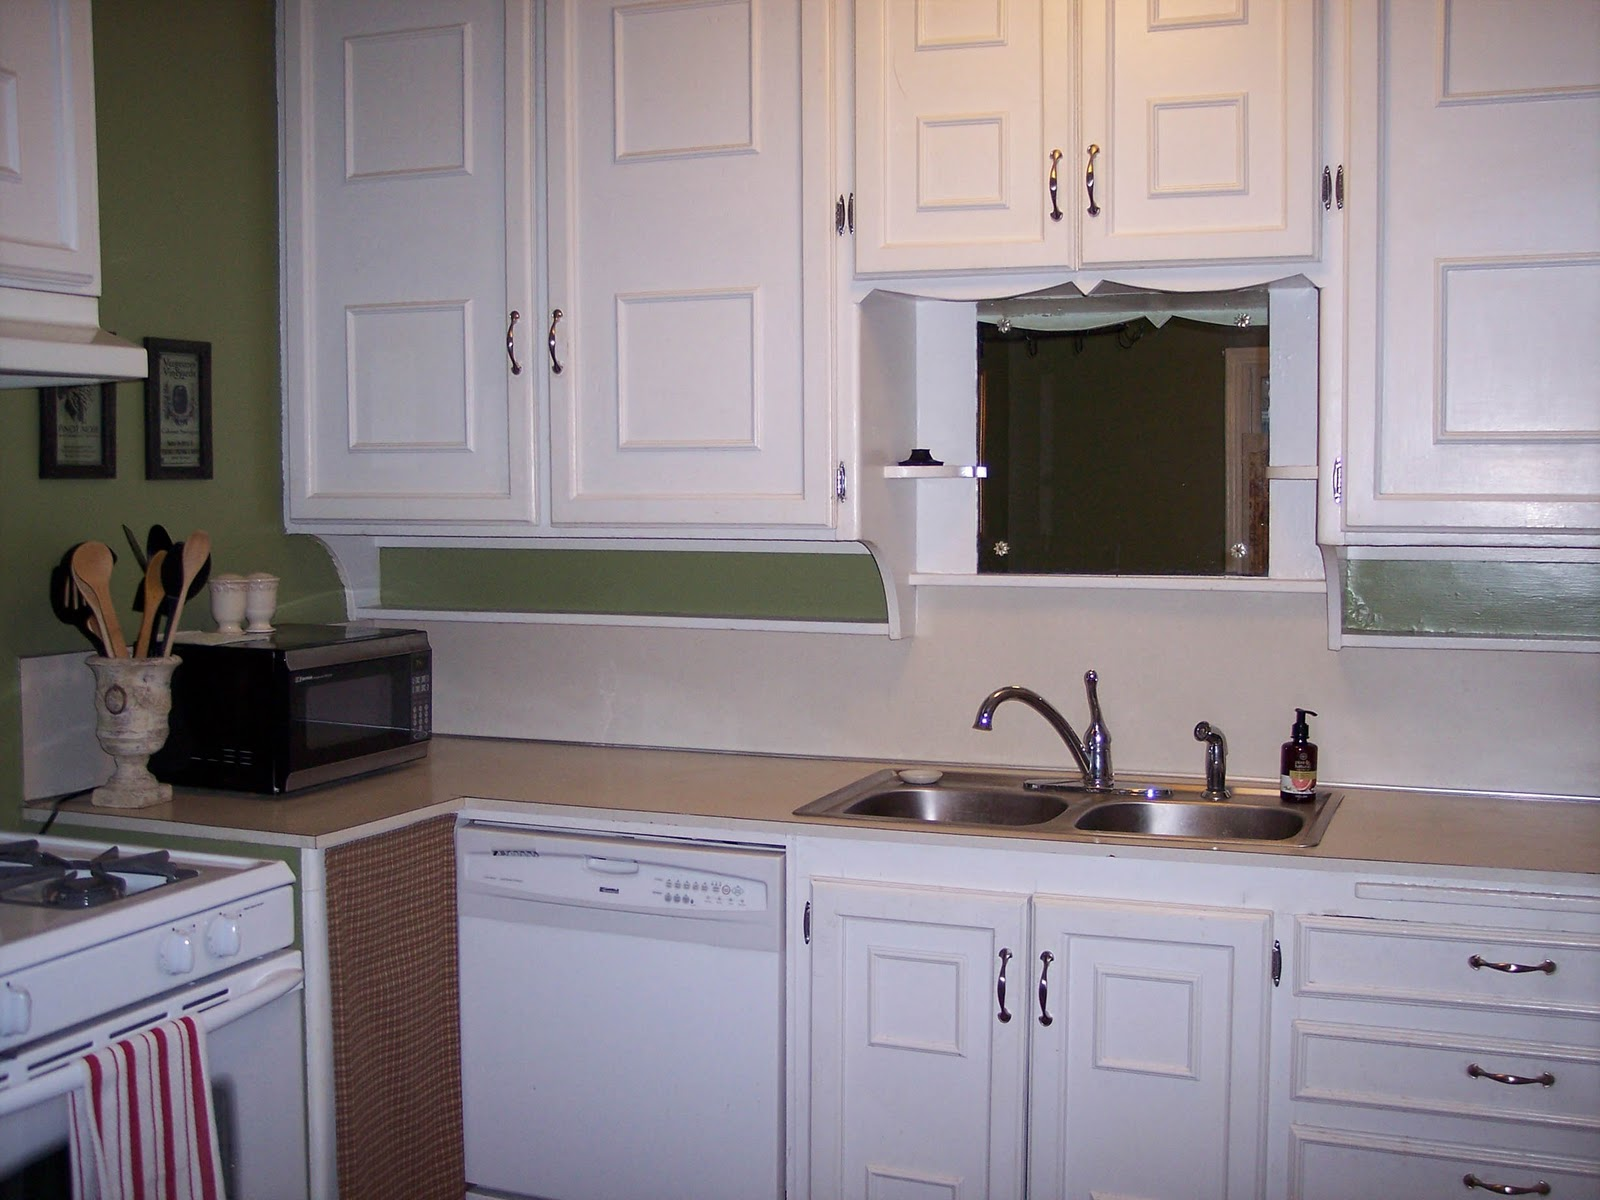 Best Kitchen Cabinet Trim Ideas Kitchen Cabinet Crown Molding And Trim Kitchen Cabinet Moldings